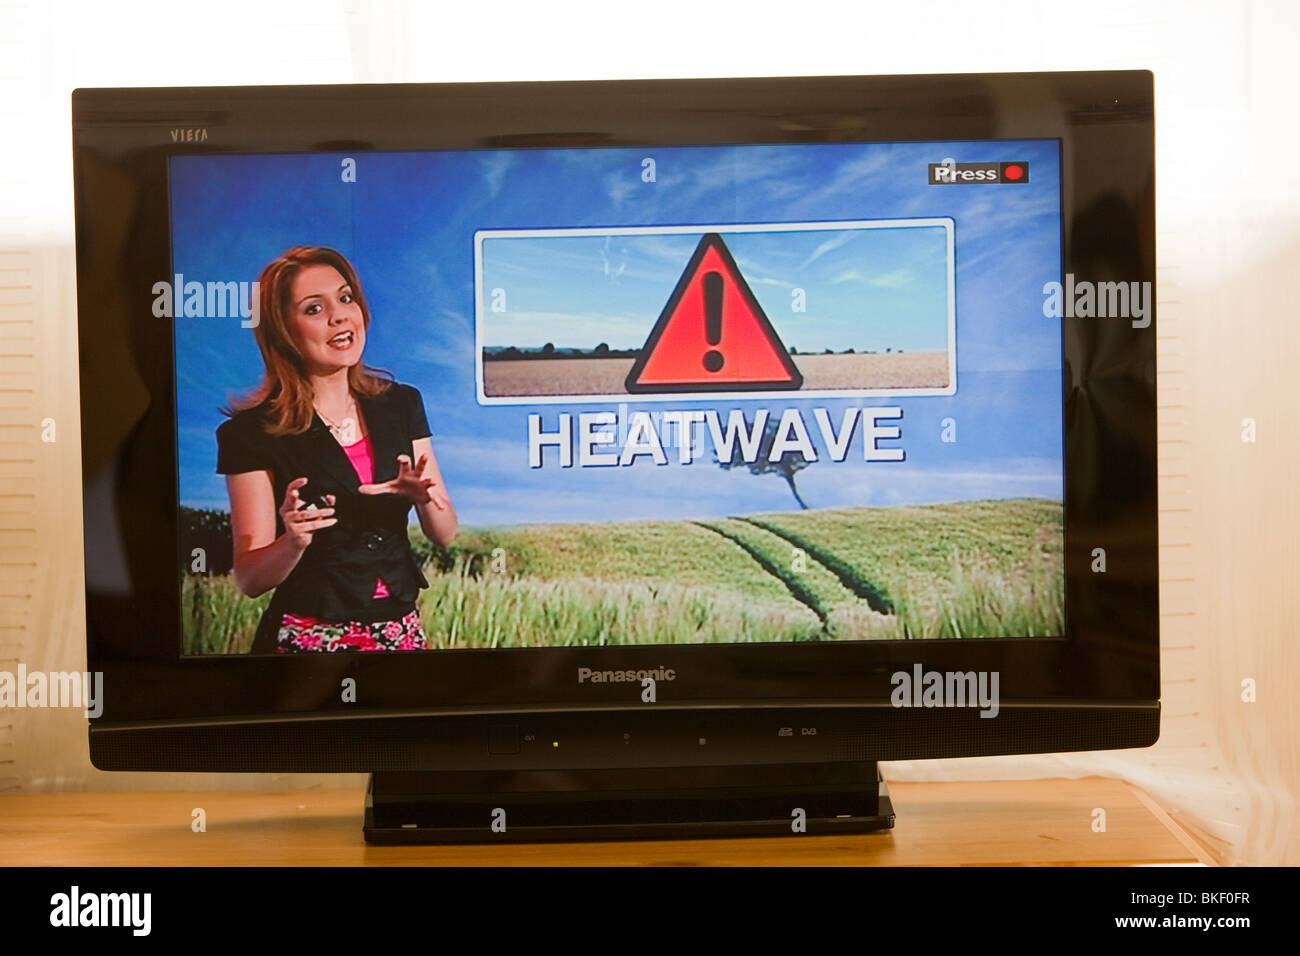 A TV weather forecast, forecasting a heat wave in the UK. Stock Photo